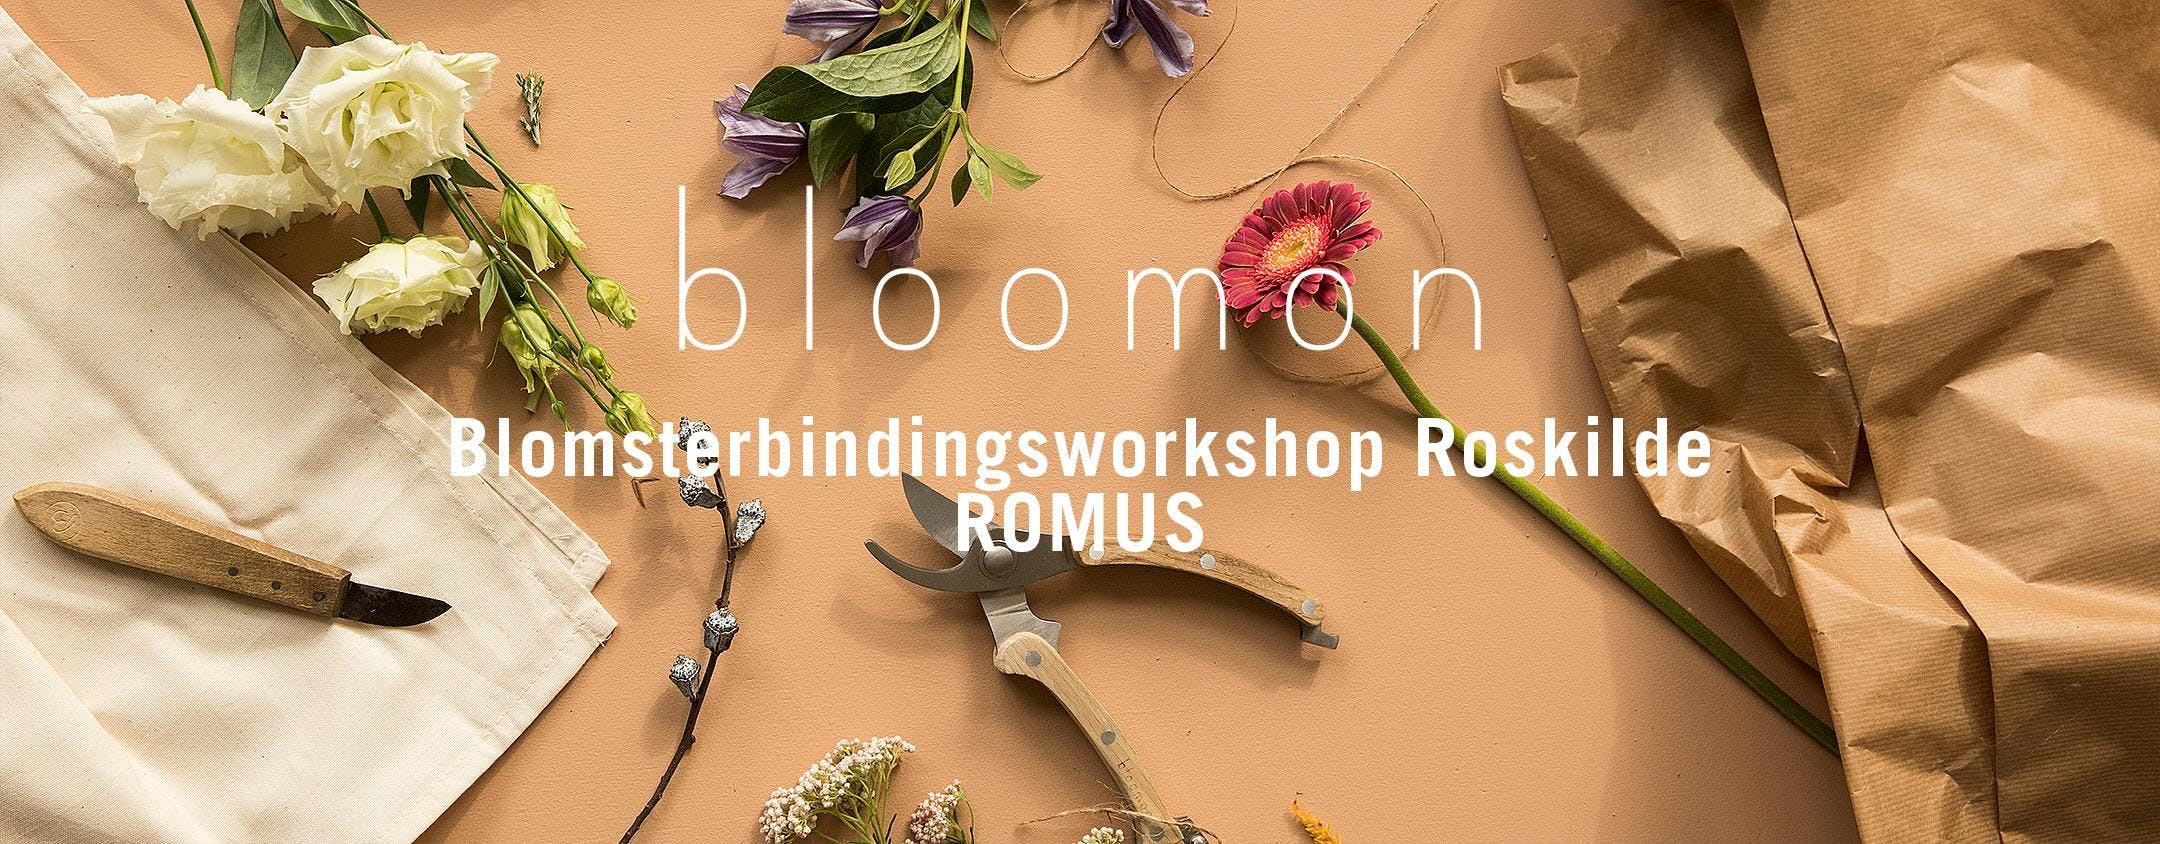 bloomon blomsterbindings-workshop 19. septemb